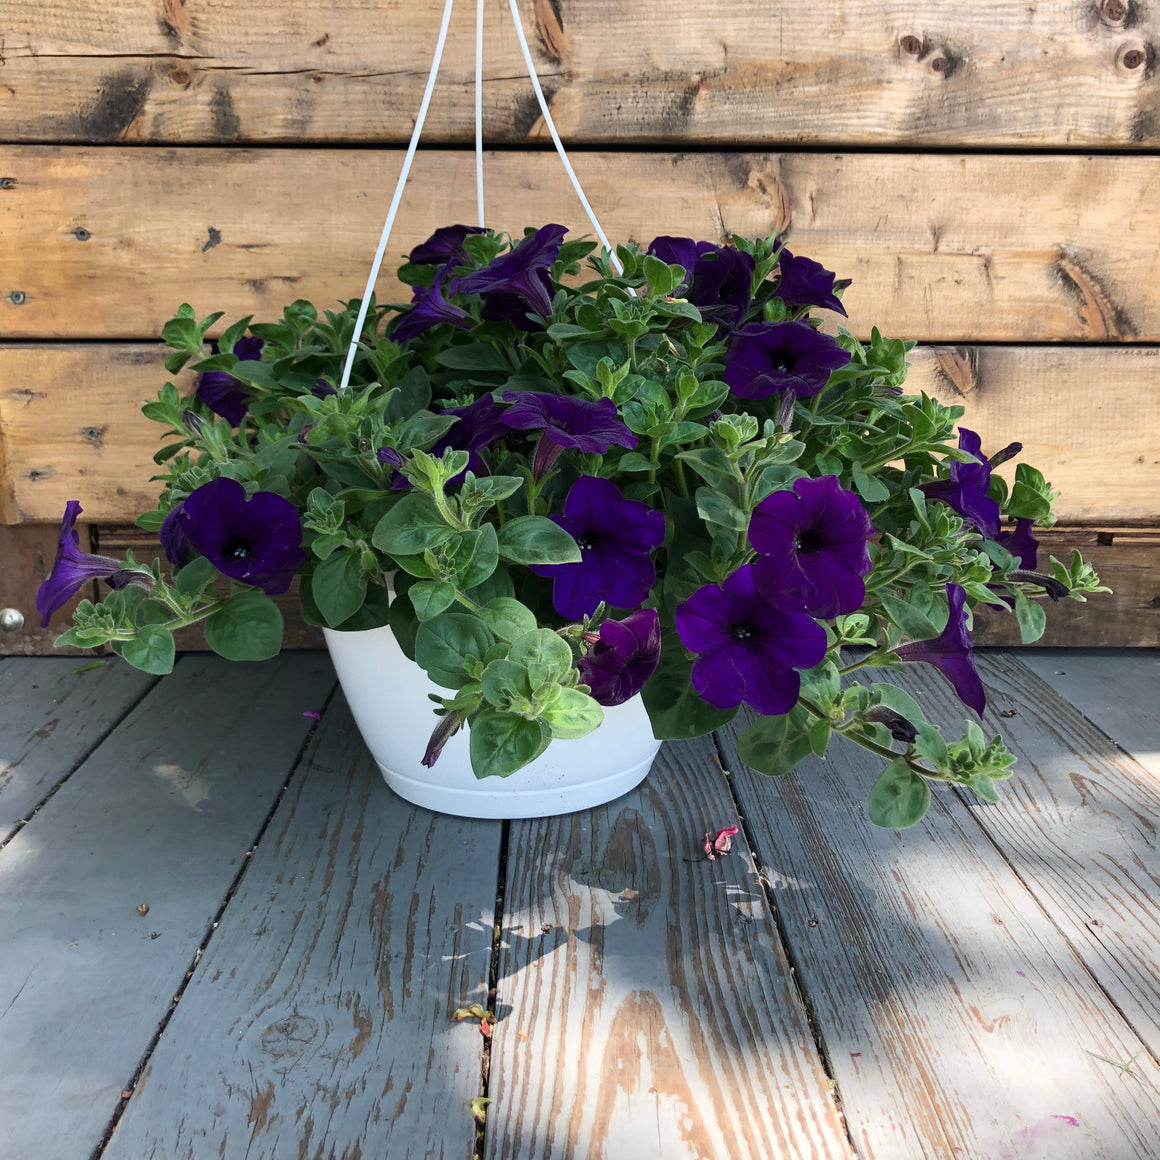 Flowers - Hanging Baskets - 10 inch